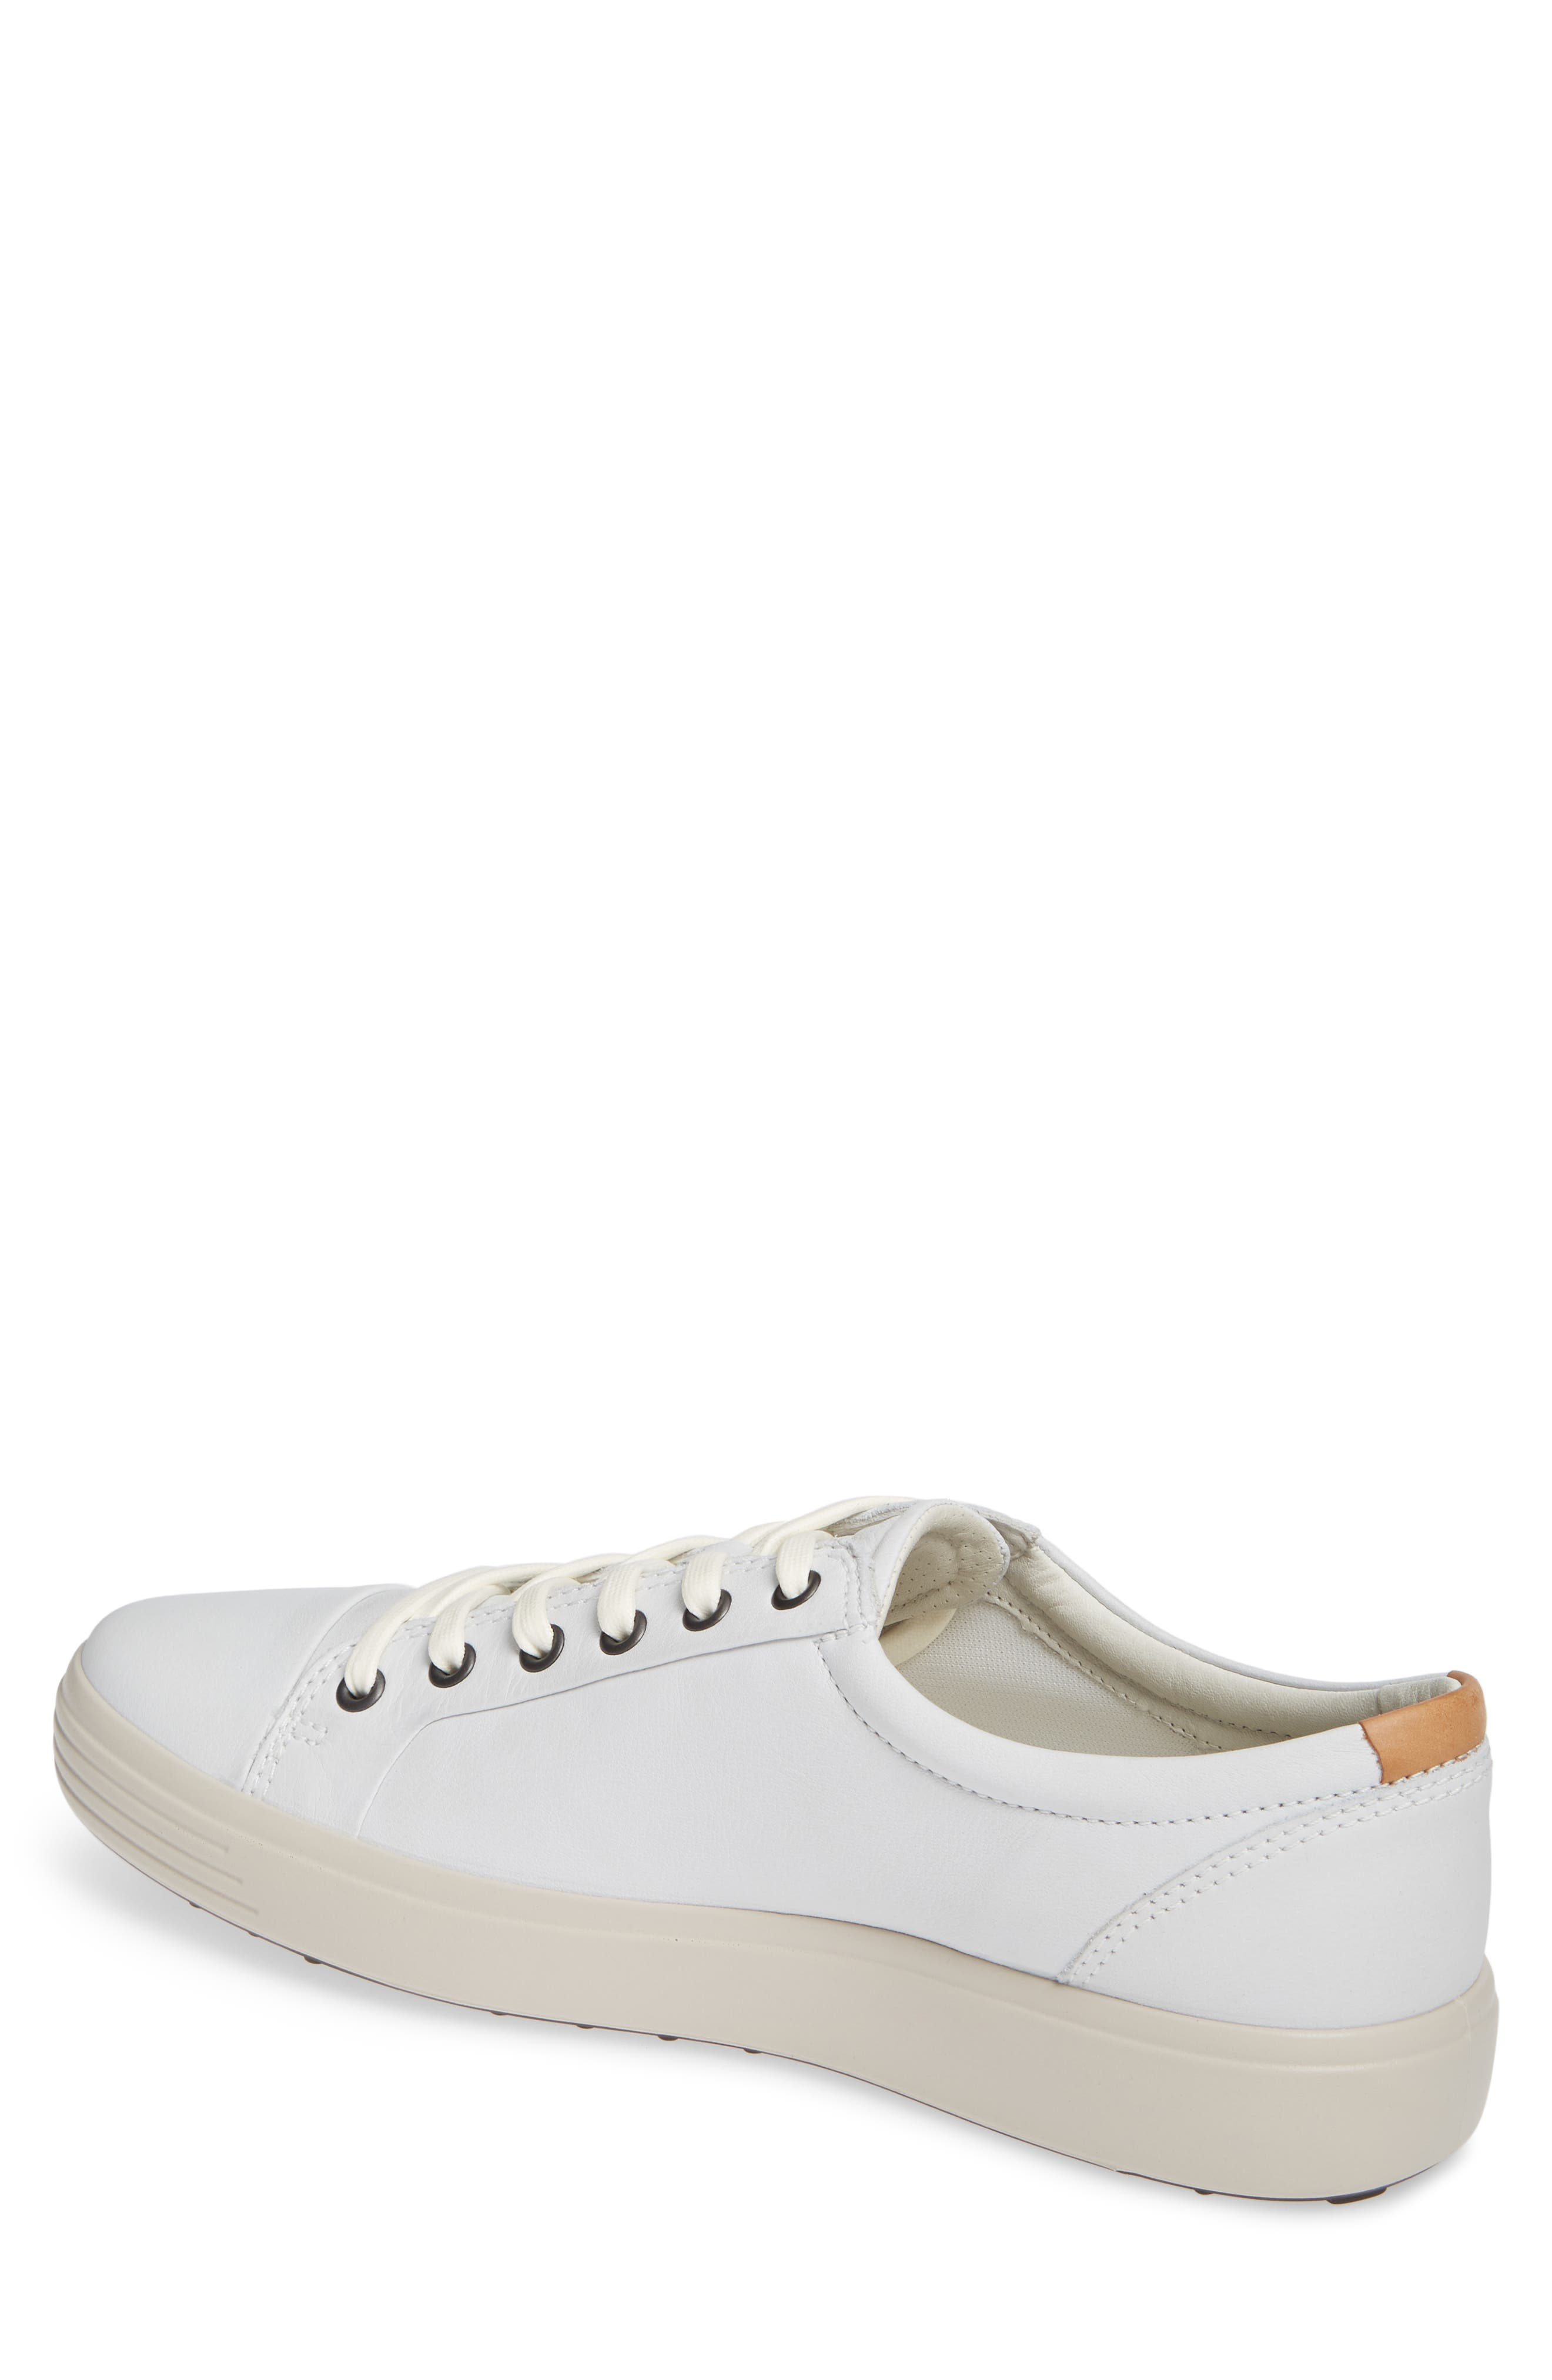 ,                             Soft VII Lace-Up Sneaker,                             Alternate thumbnail 2, color,                             WHITE LEATHER